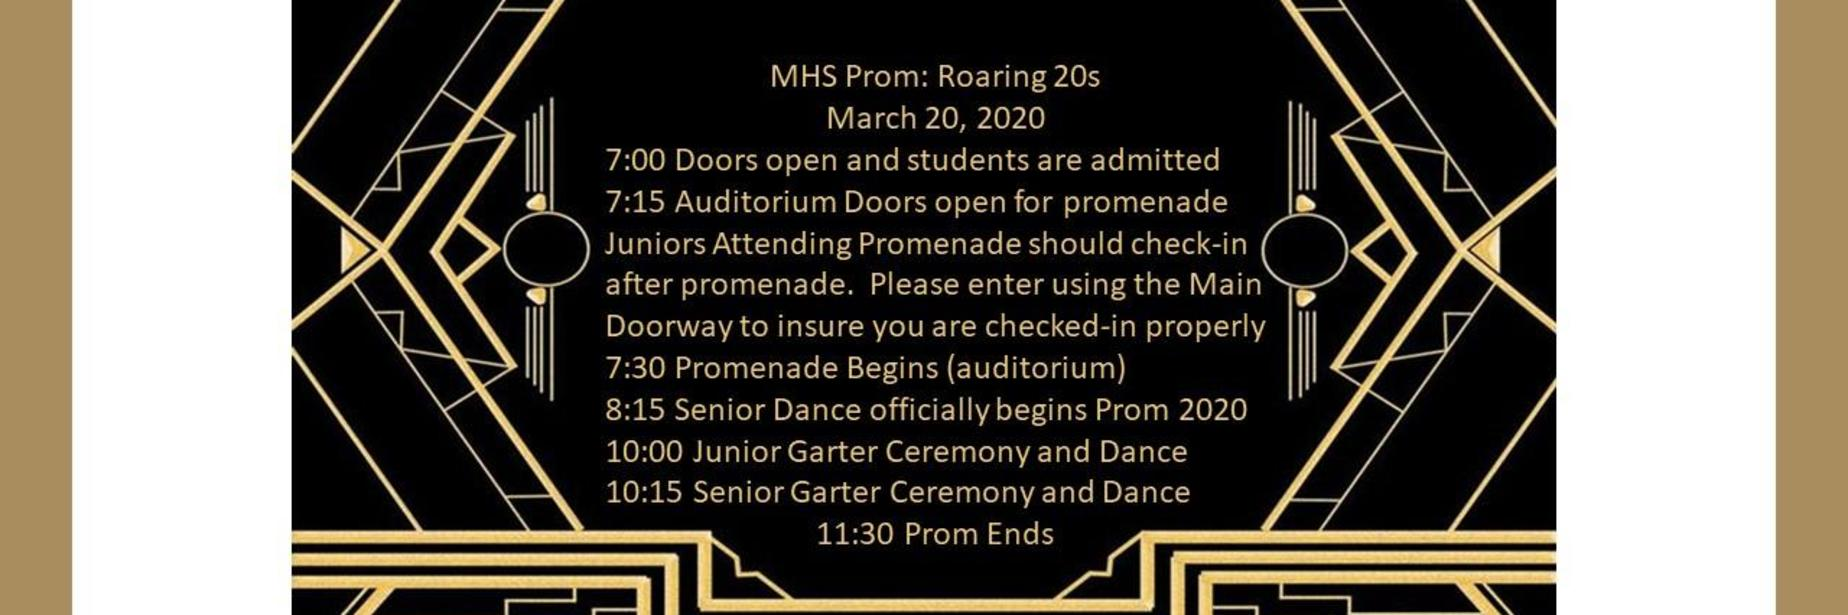 MHS Prom: Roaring 20s  March 20, 2020 7:00 Doors open and students are admitted 7:15 Auditorium Doors open for promenade Juniors Attending Promenade should check-in after promenade.  Please enter using the Main Doorway to insure you are checked-in properly 7:30 Promenade Begins (auditorium) 8:15 Senior Dance officially begins Prom 2020 10:00 Junior Garter Ceremony and Dance 10:15 Senior Garter Ceremony and Dance 11:30 Prom Ends